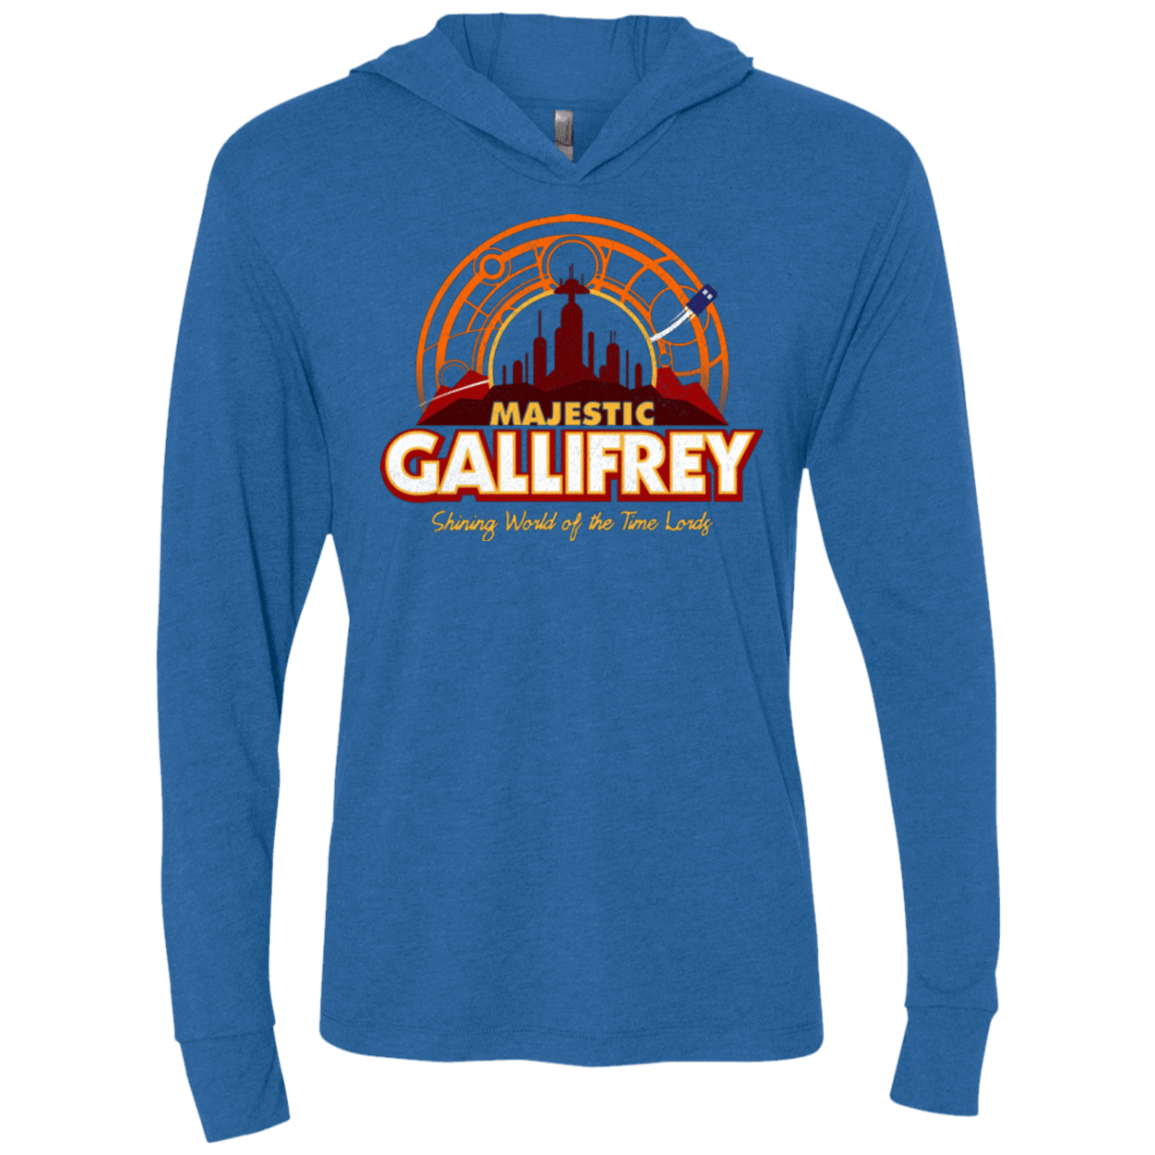 T-Shirts Vintage Royal / X-Small Majestic Gallifrey Triblend Long Sleeve Hoodie Tee